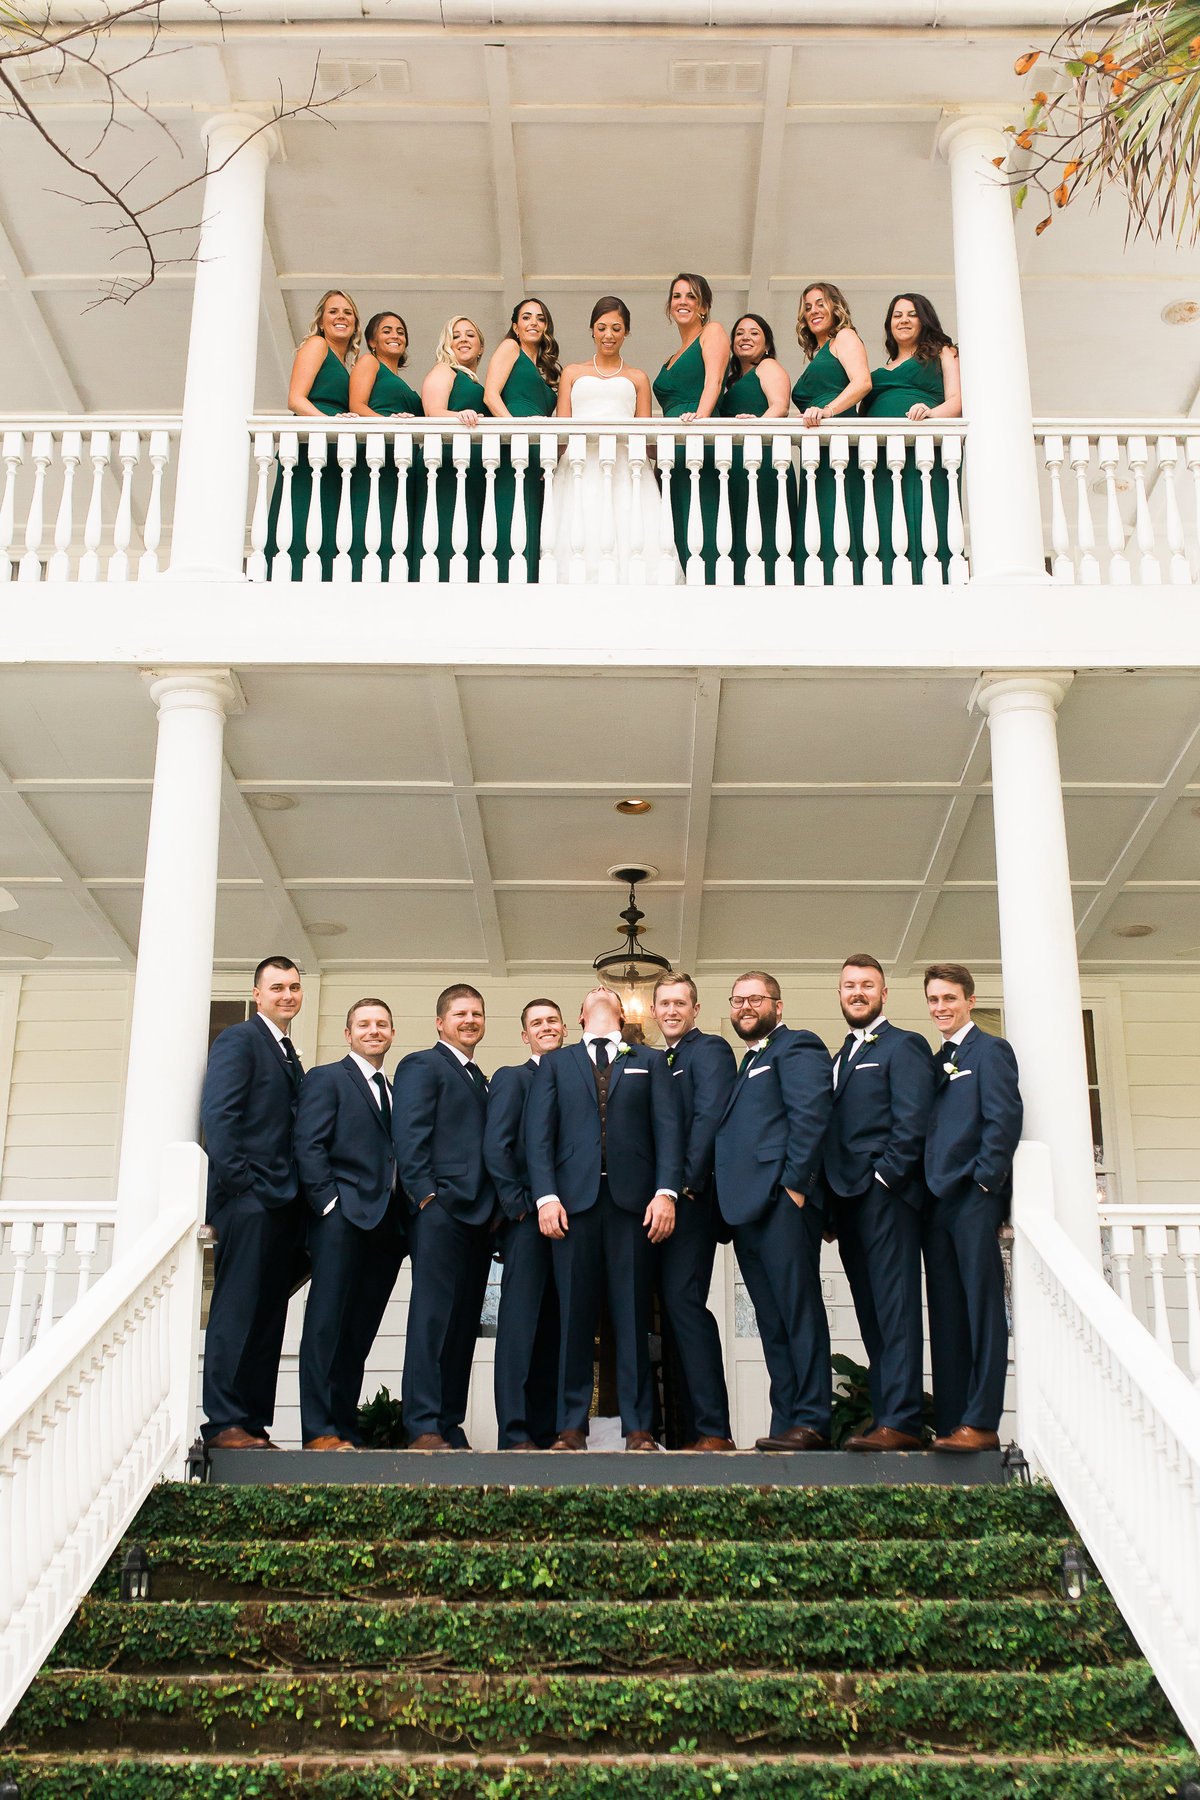 Charleston Weddings- Nancy Lempesis Photography - Wedding Phtography (49)